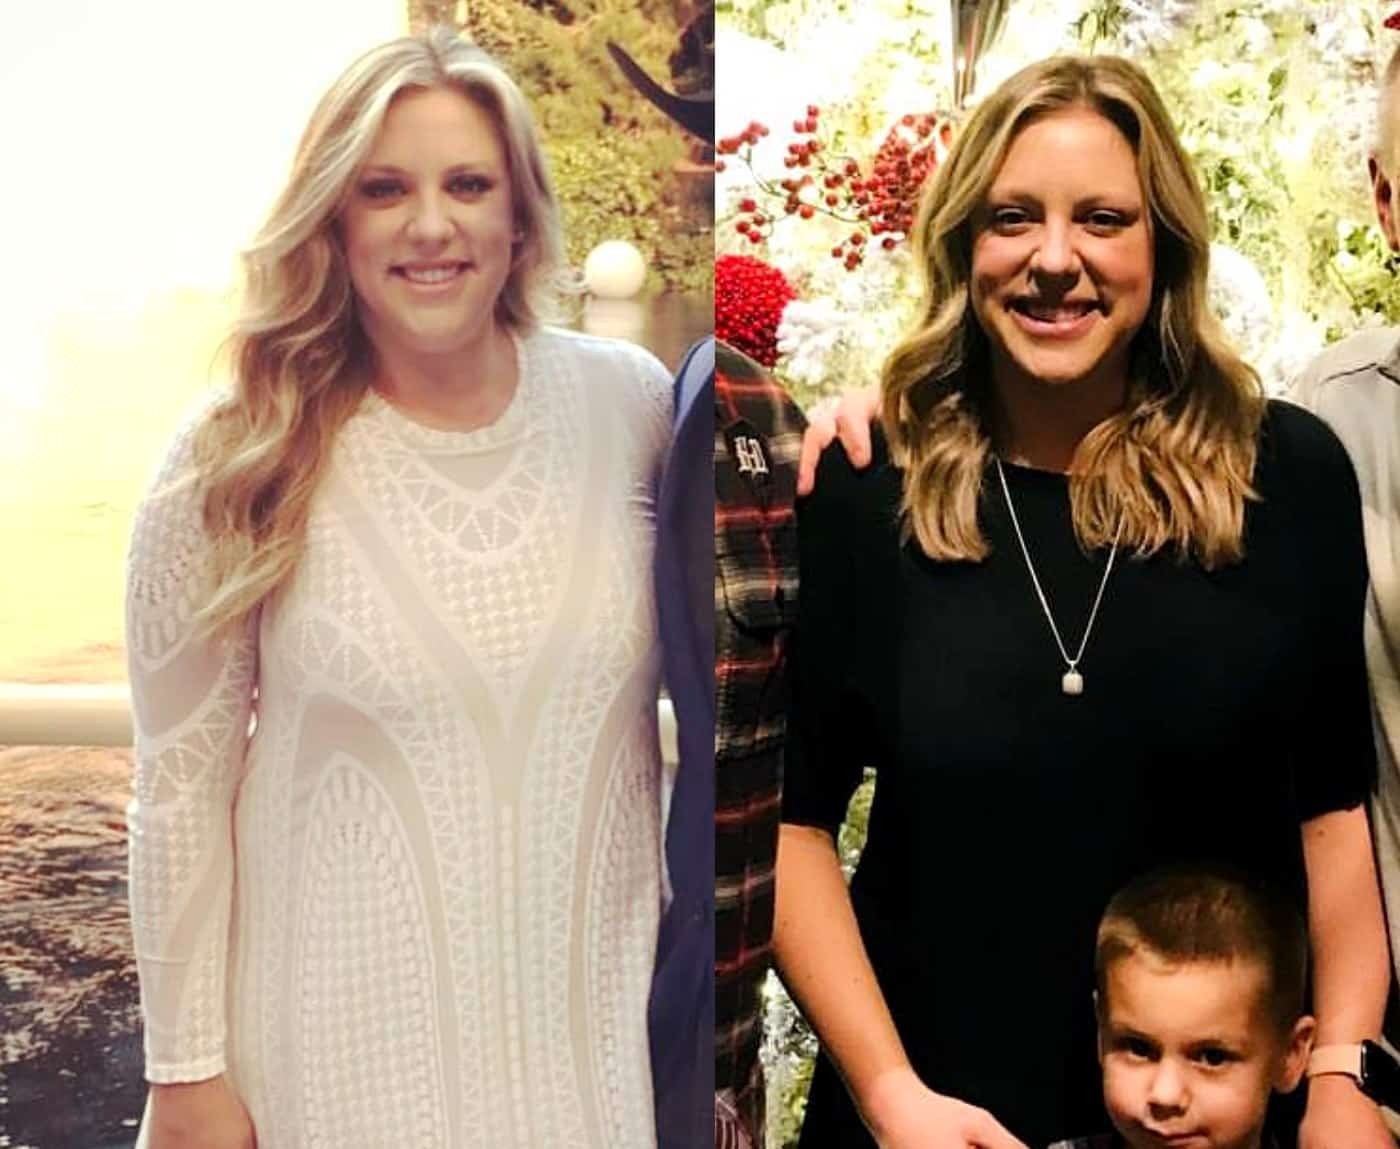 RHOC Briana Culberson Before and After Weight Loss Photos